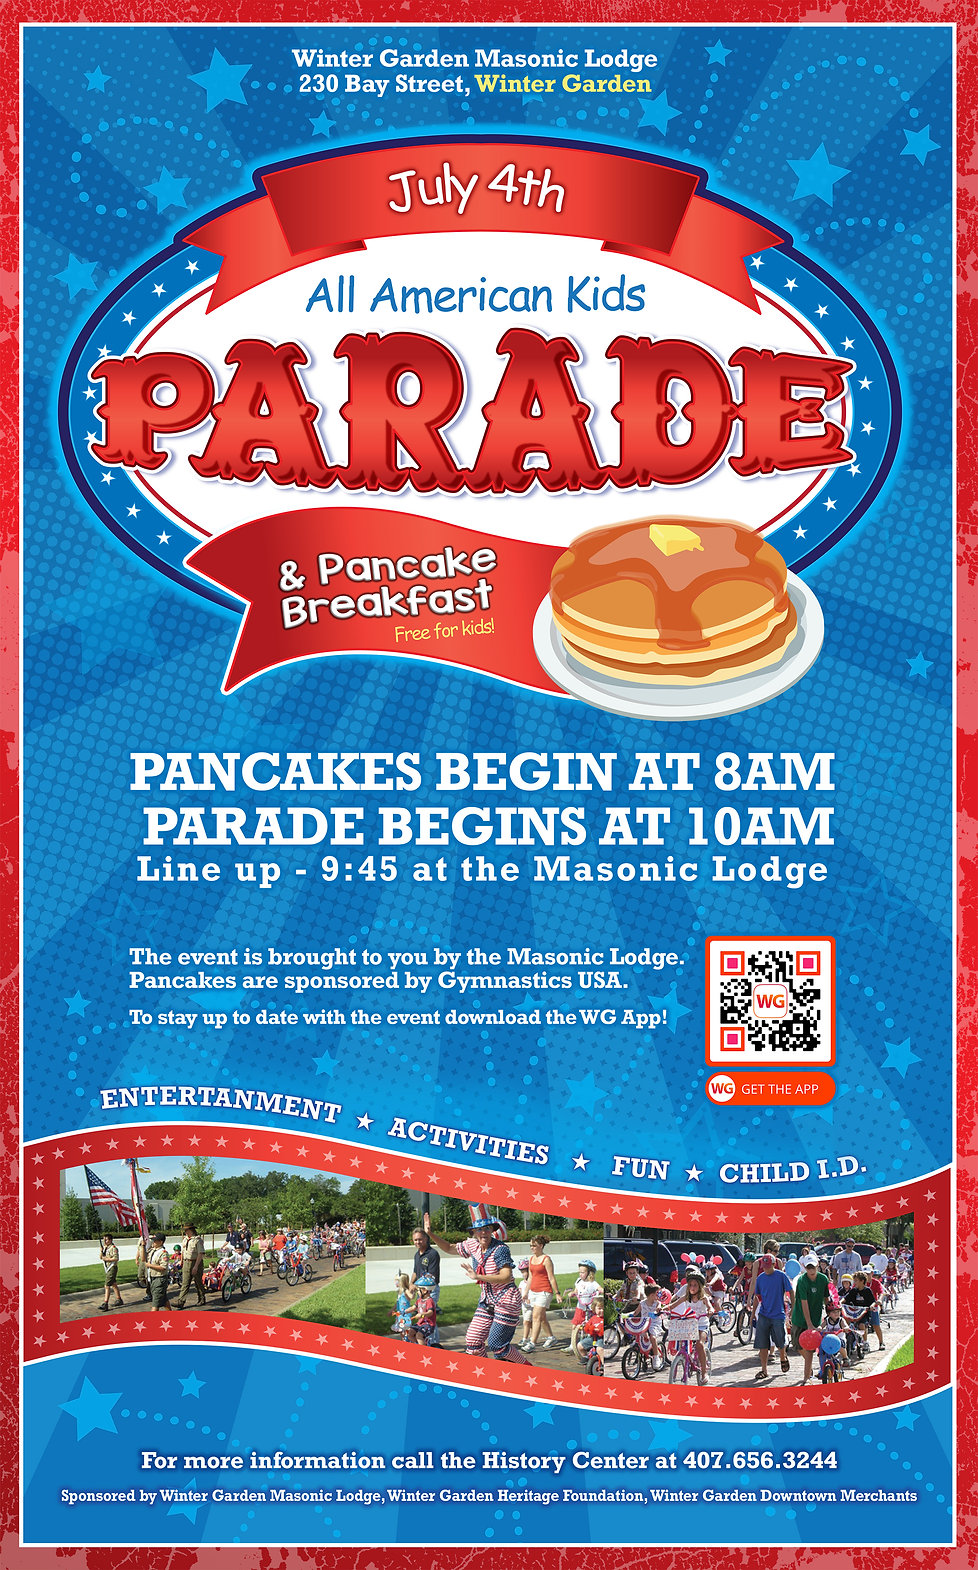 The Annual Winter Garden Independence Day Pancake Breakfast and Parade on the 4th of July